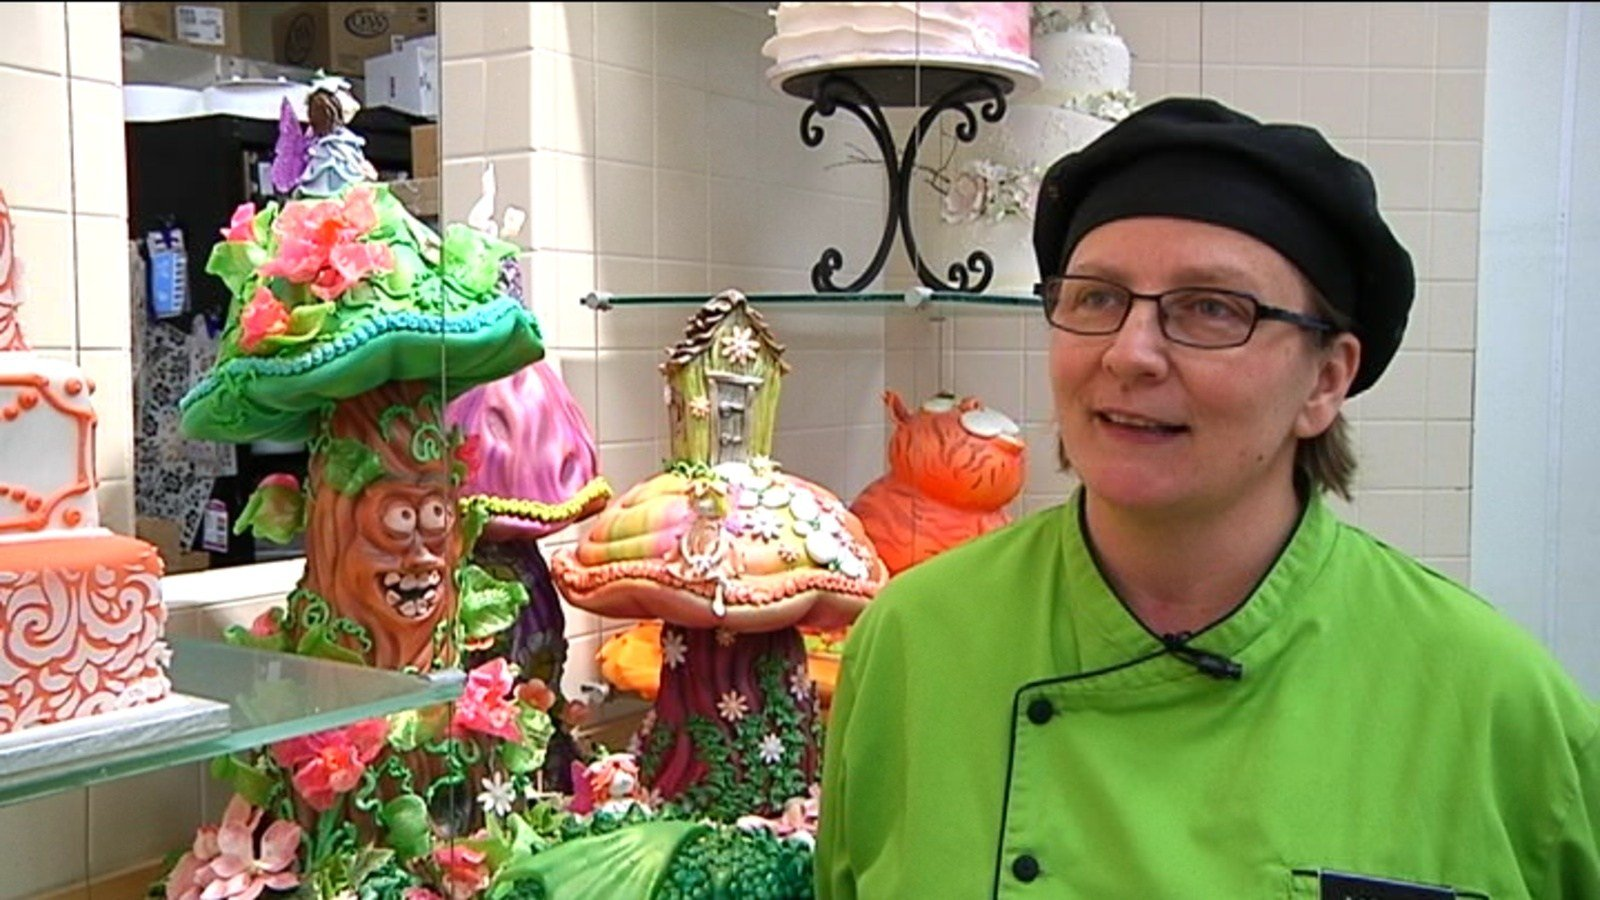 Rochester resident wins Midwest cake decorating contest ...